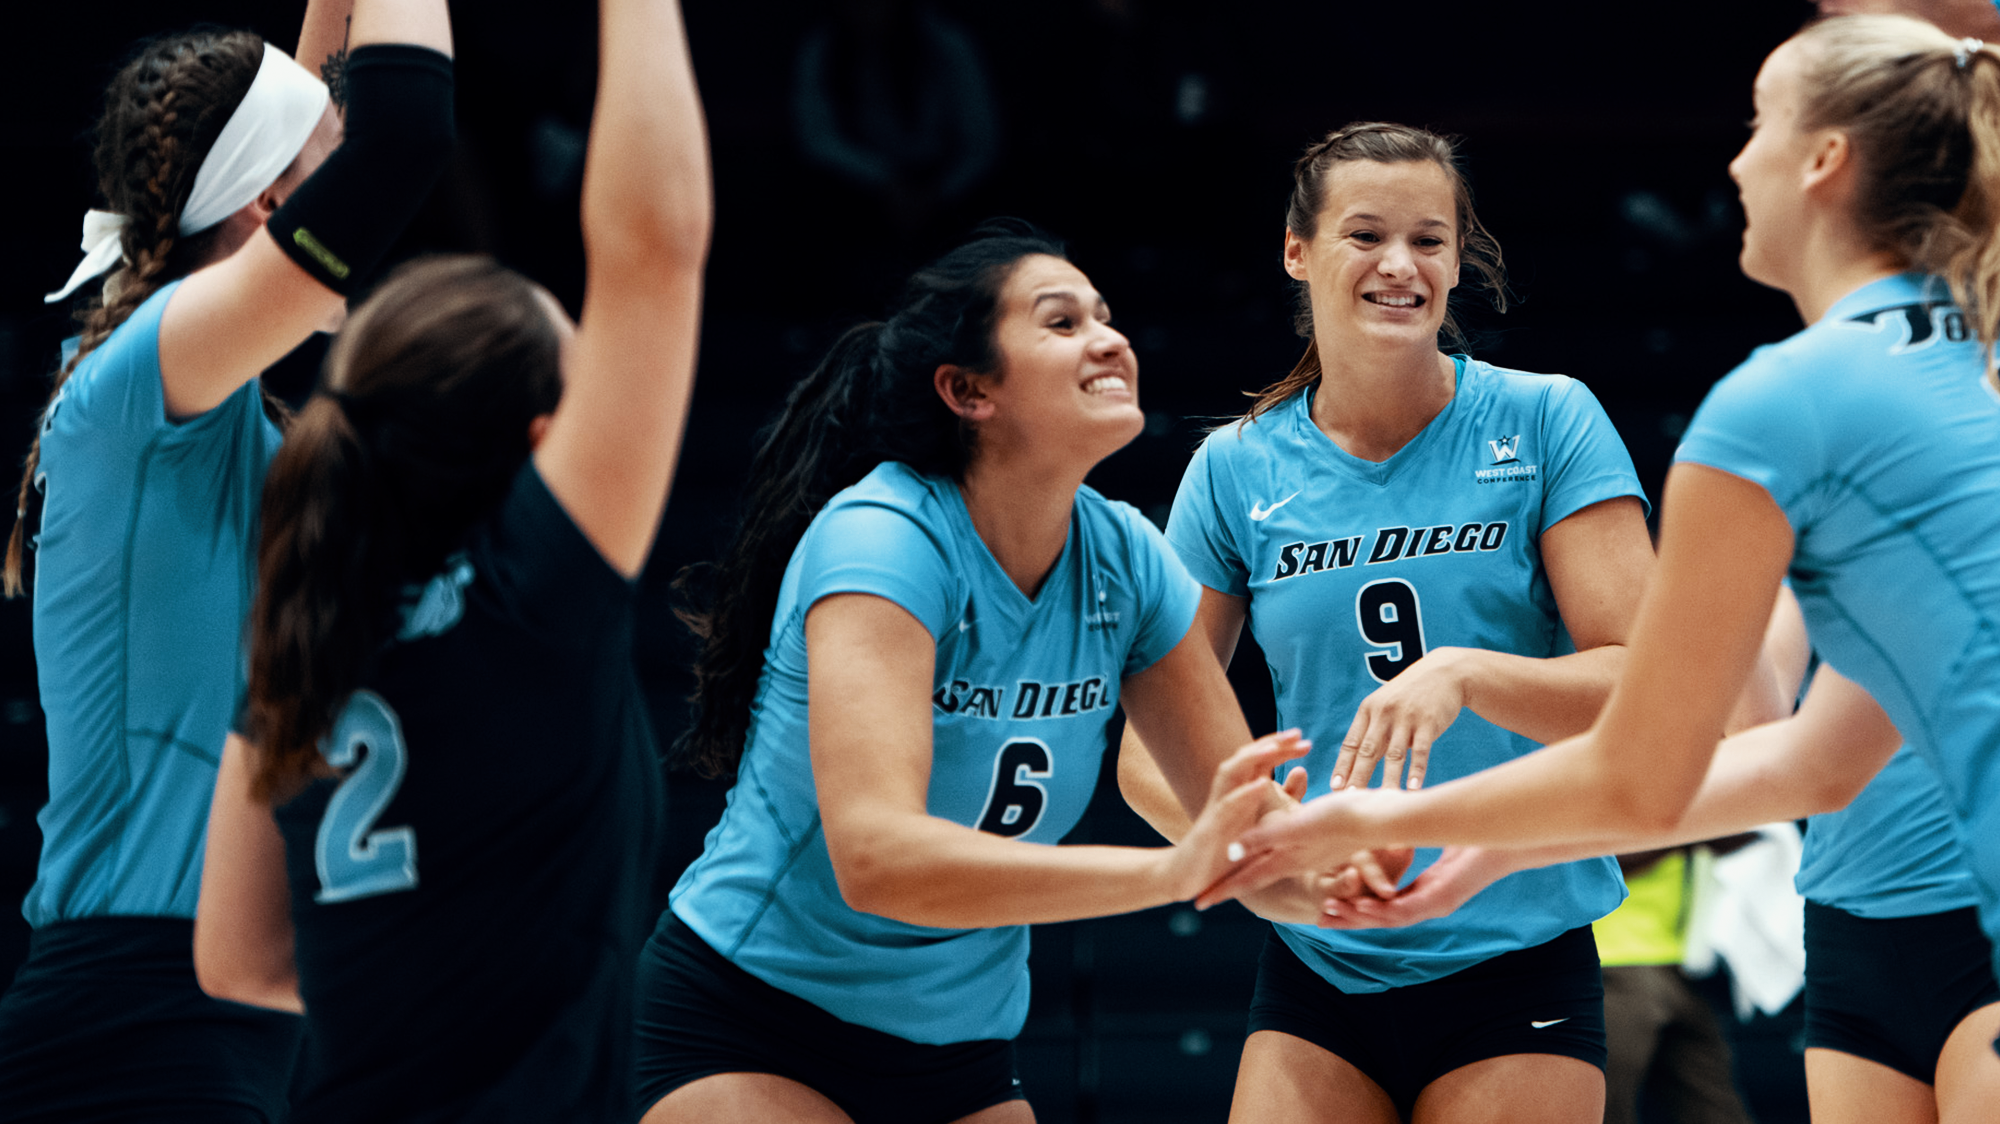 Laura Madill Women S Volleyball University Of San Diego Athletics